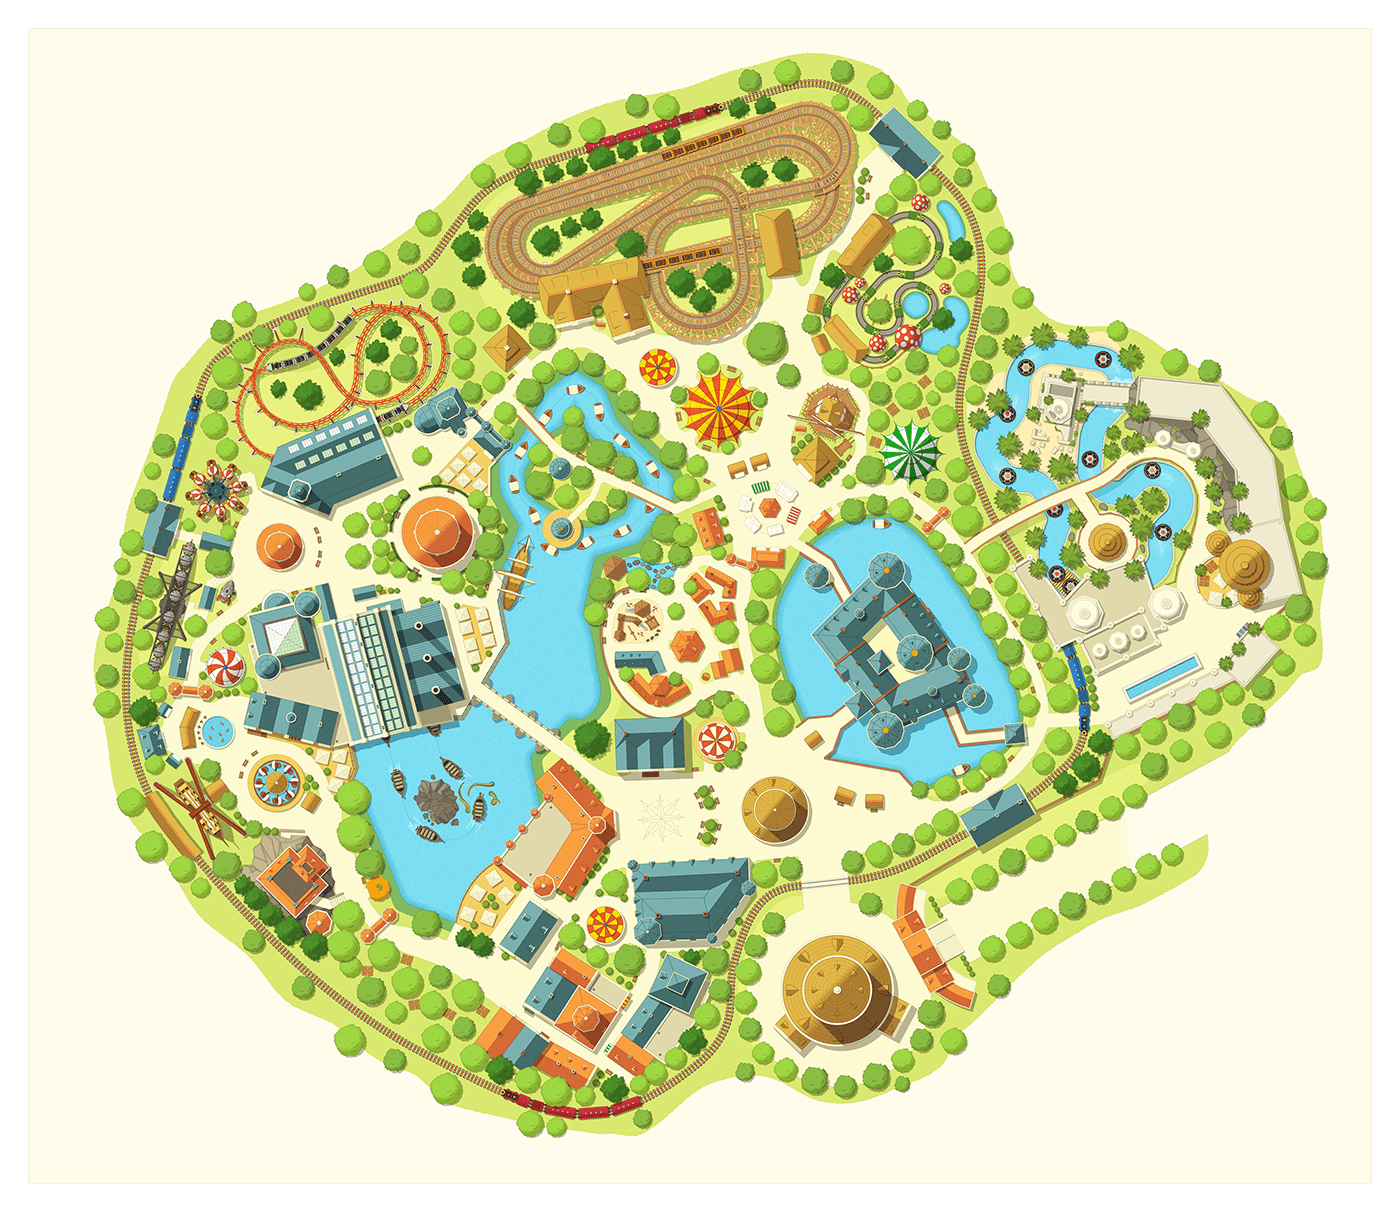 cartography map Theme Park attraction park festival resort